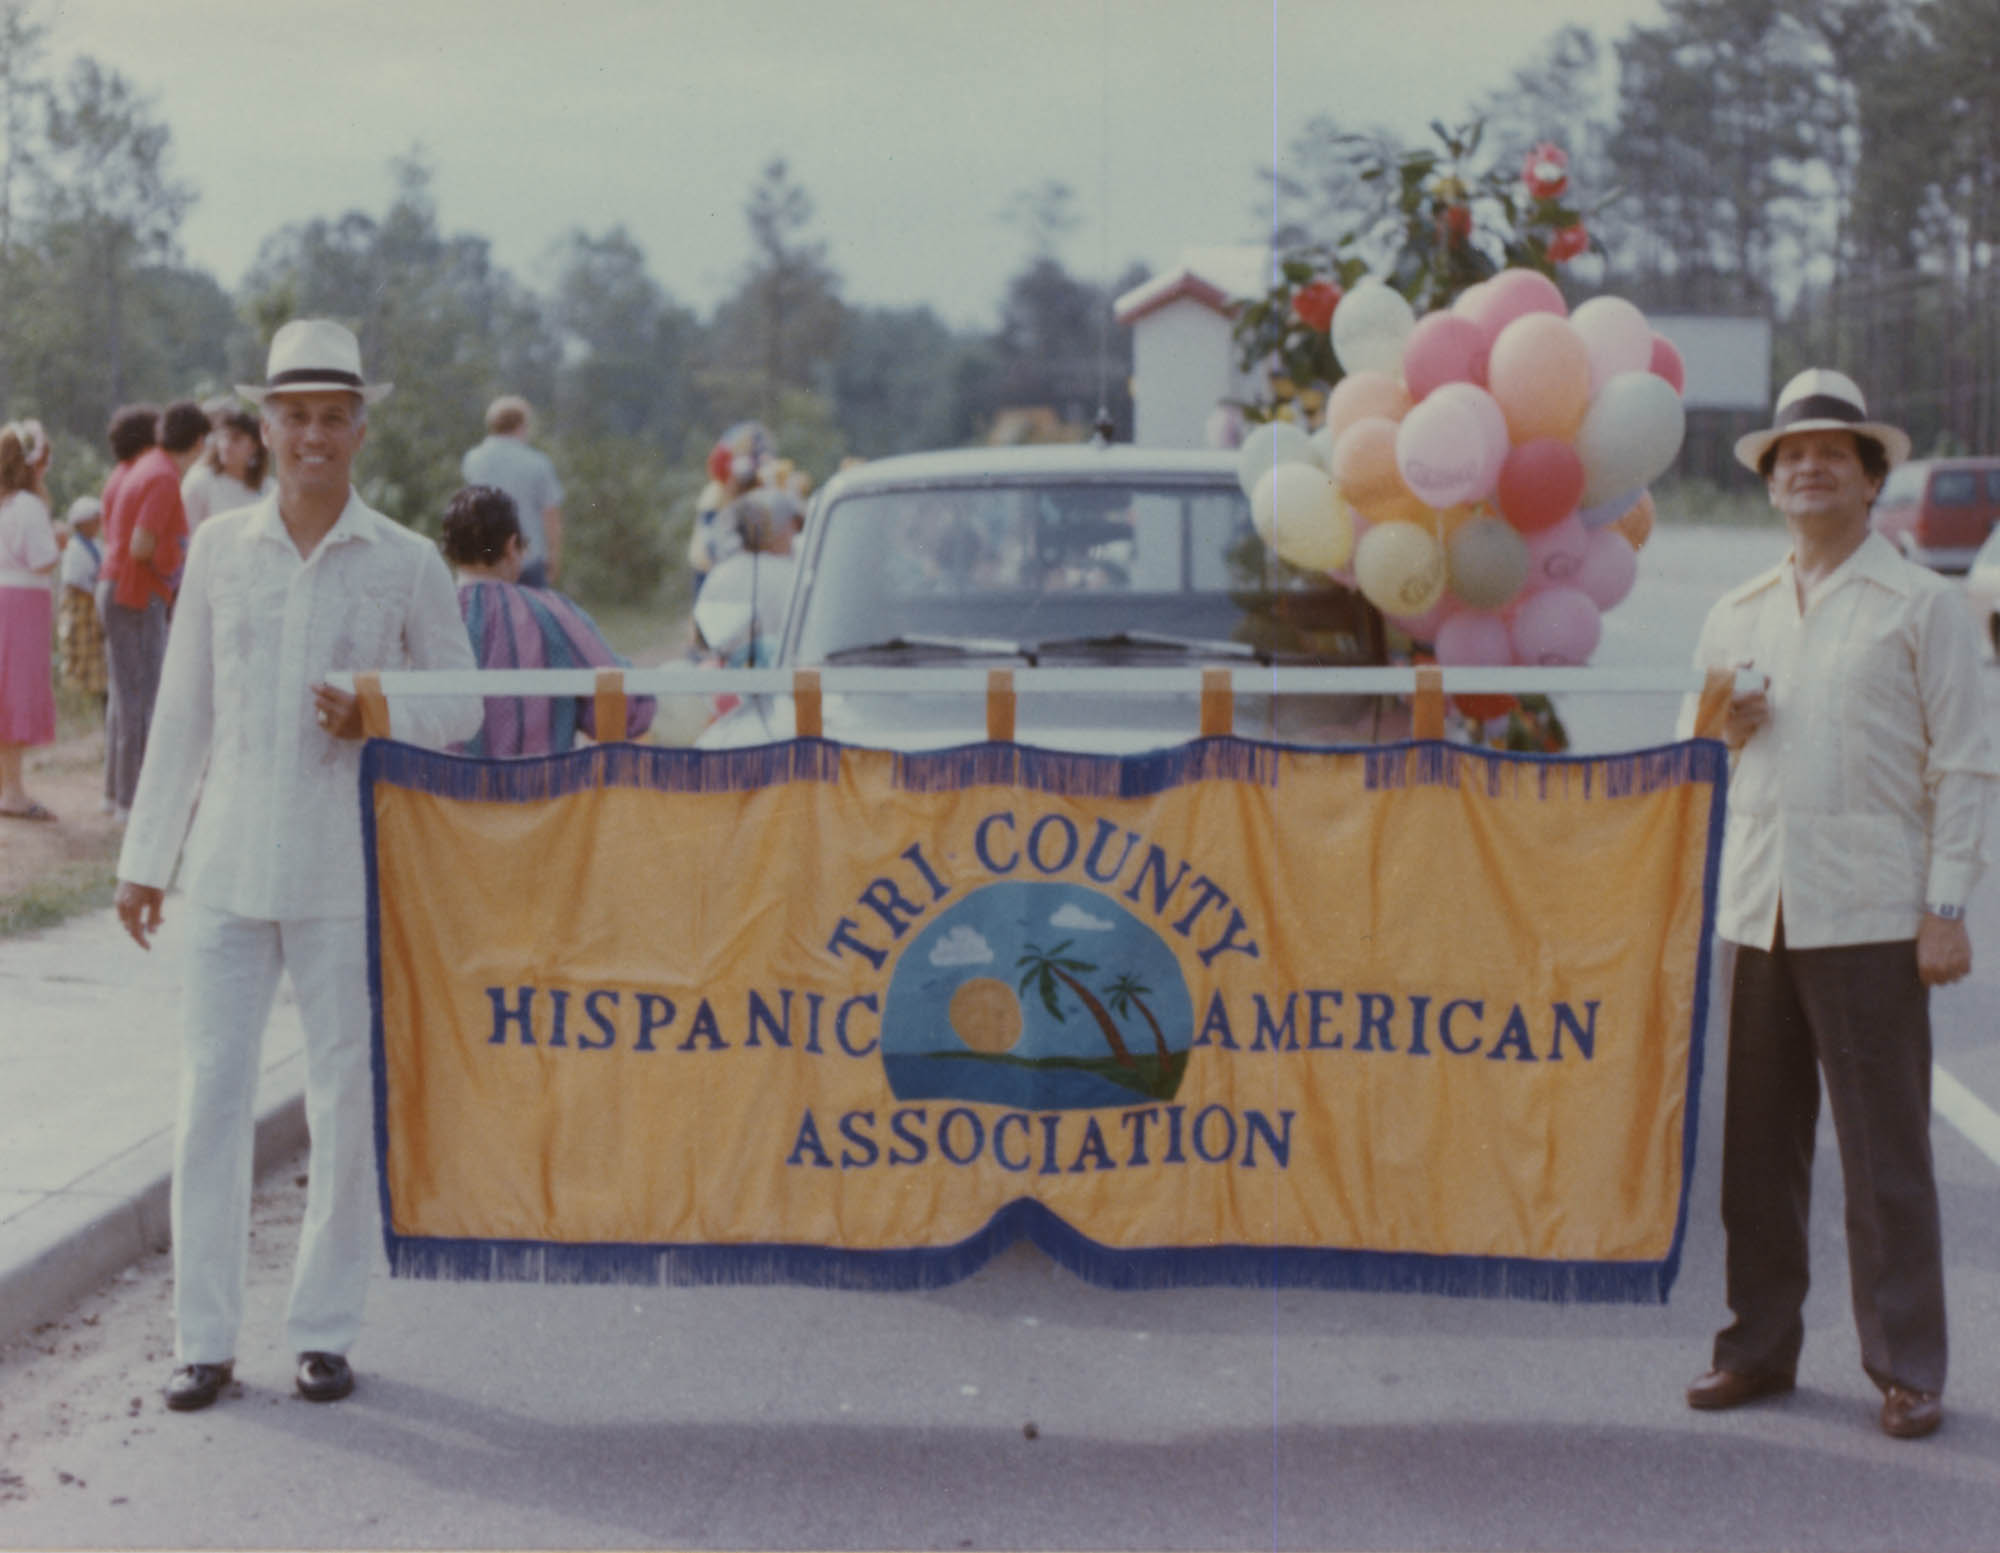 Miembros de Tri-County Hispanic American Association llevando su bandera  /  Tri-County Hispanic American Association Members with Banner